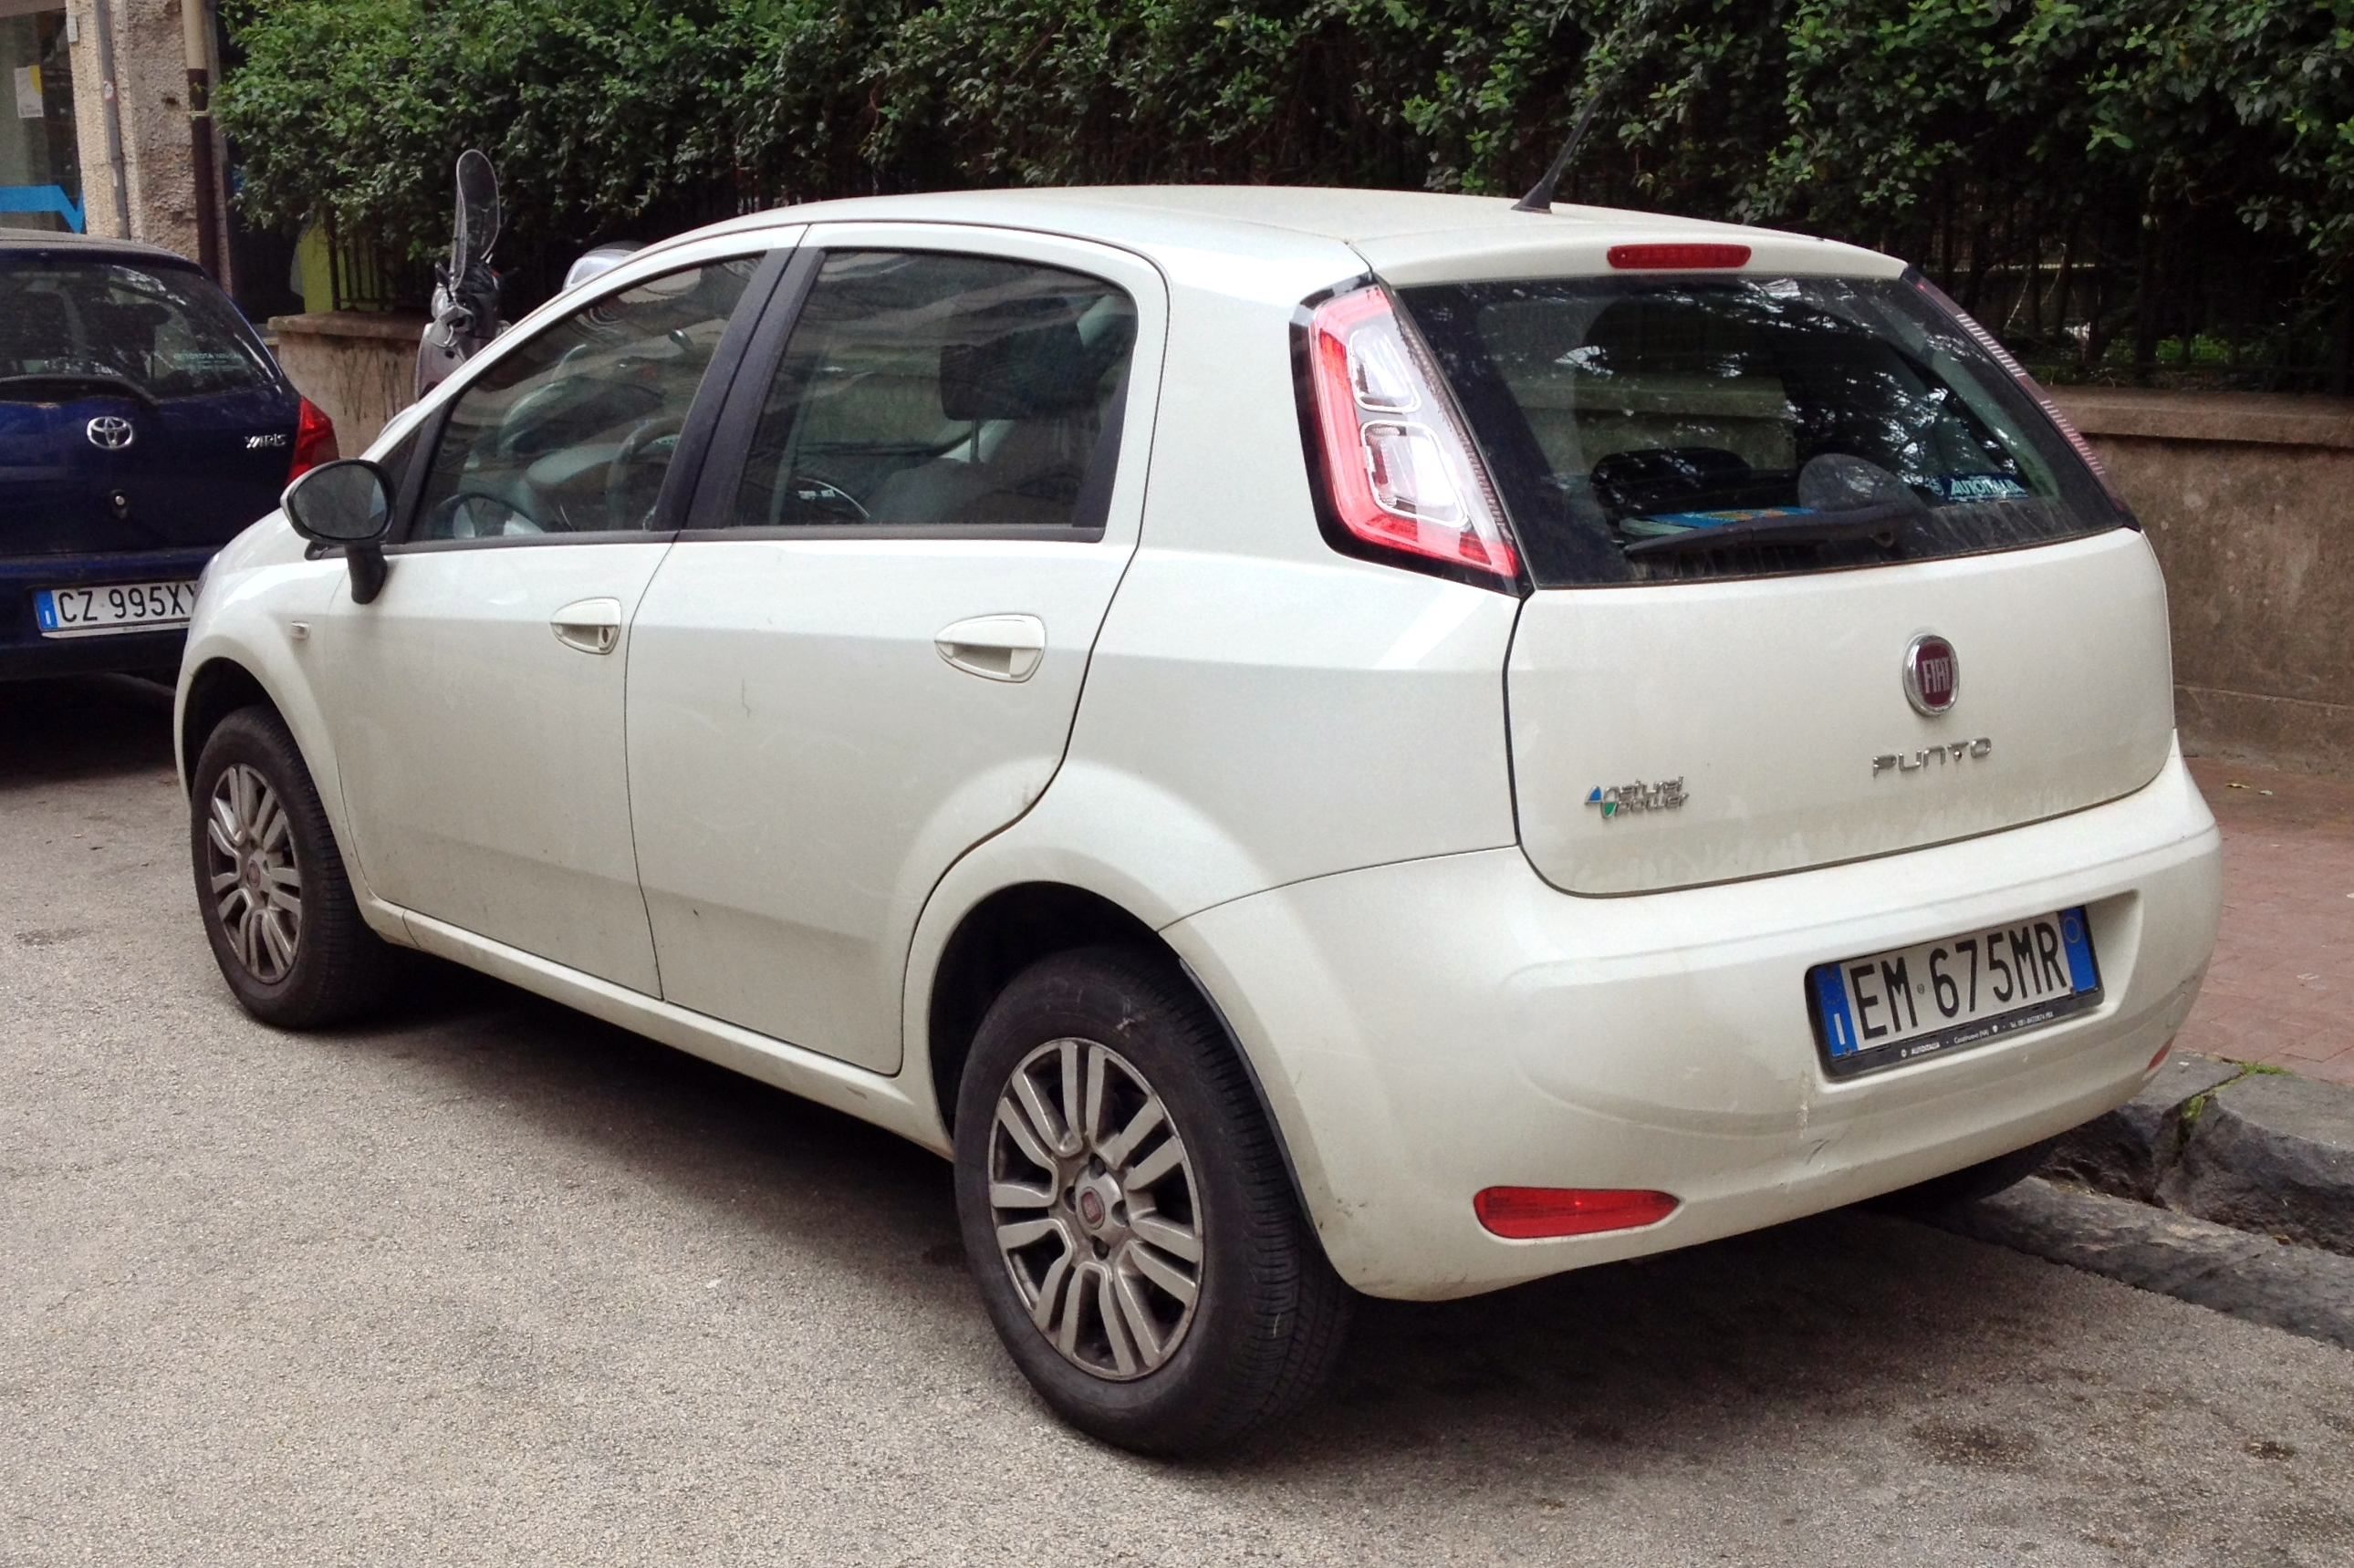 2012 Fiat Punto 1.4 Natural Power facelift